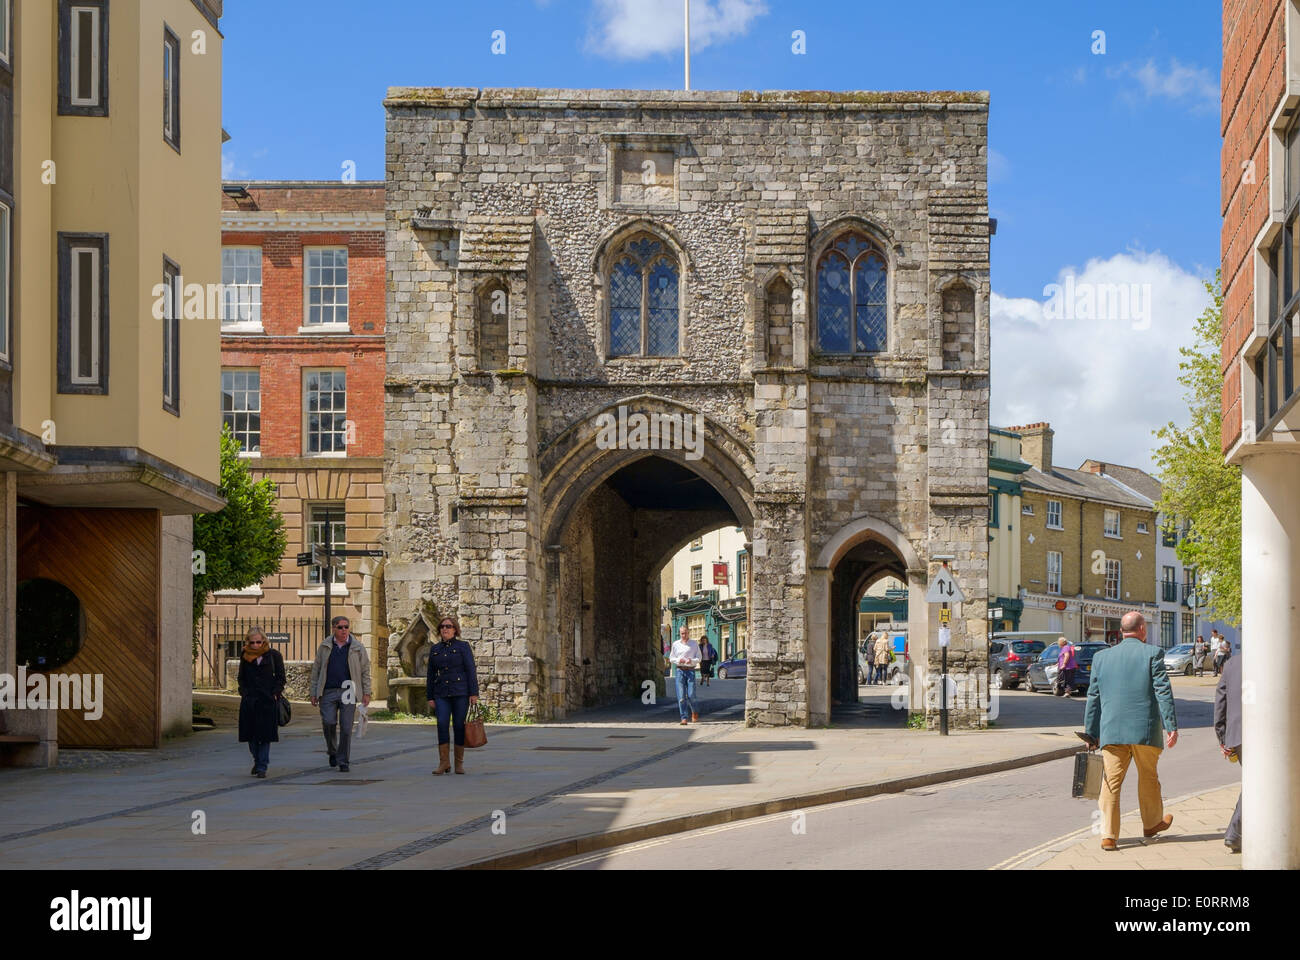 The Medieval gate into the city of Winchester, Hampshire, England, UK - Stock Image